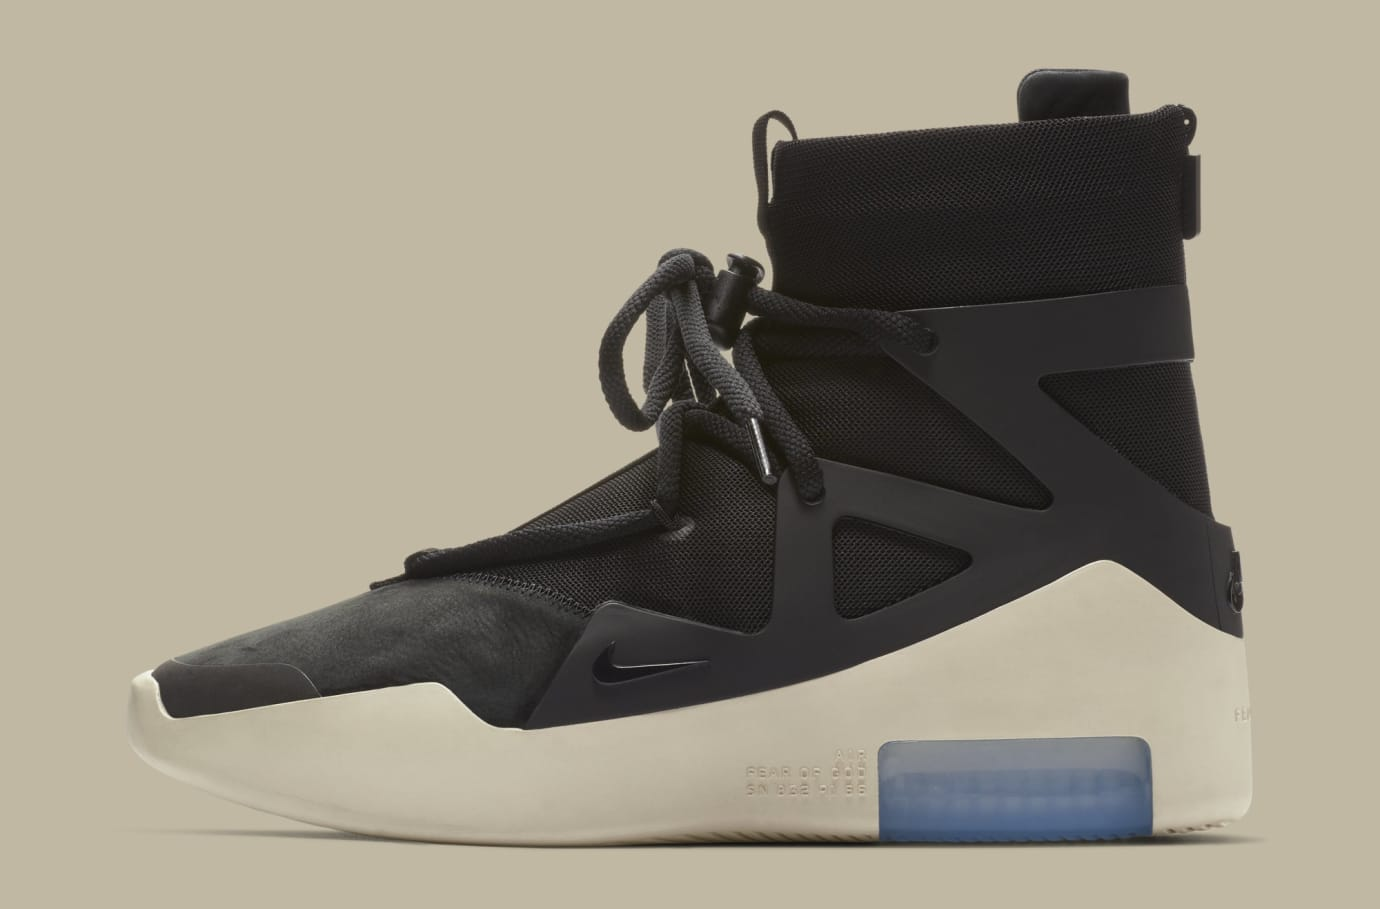 Nike Air Fear of God 1 'Black' AR4237-001 (Lateral)